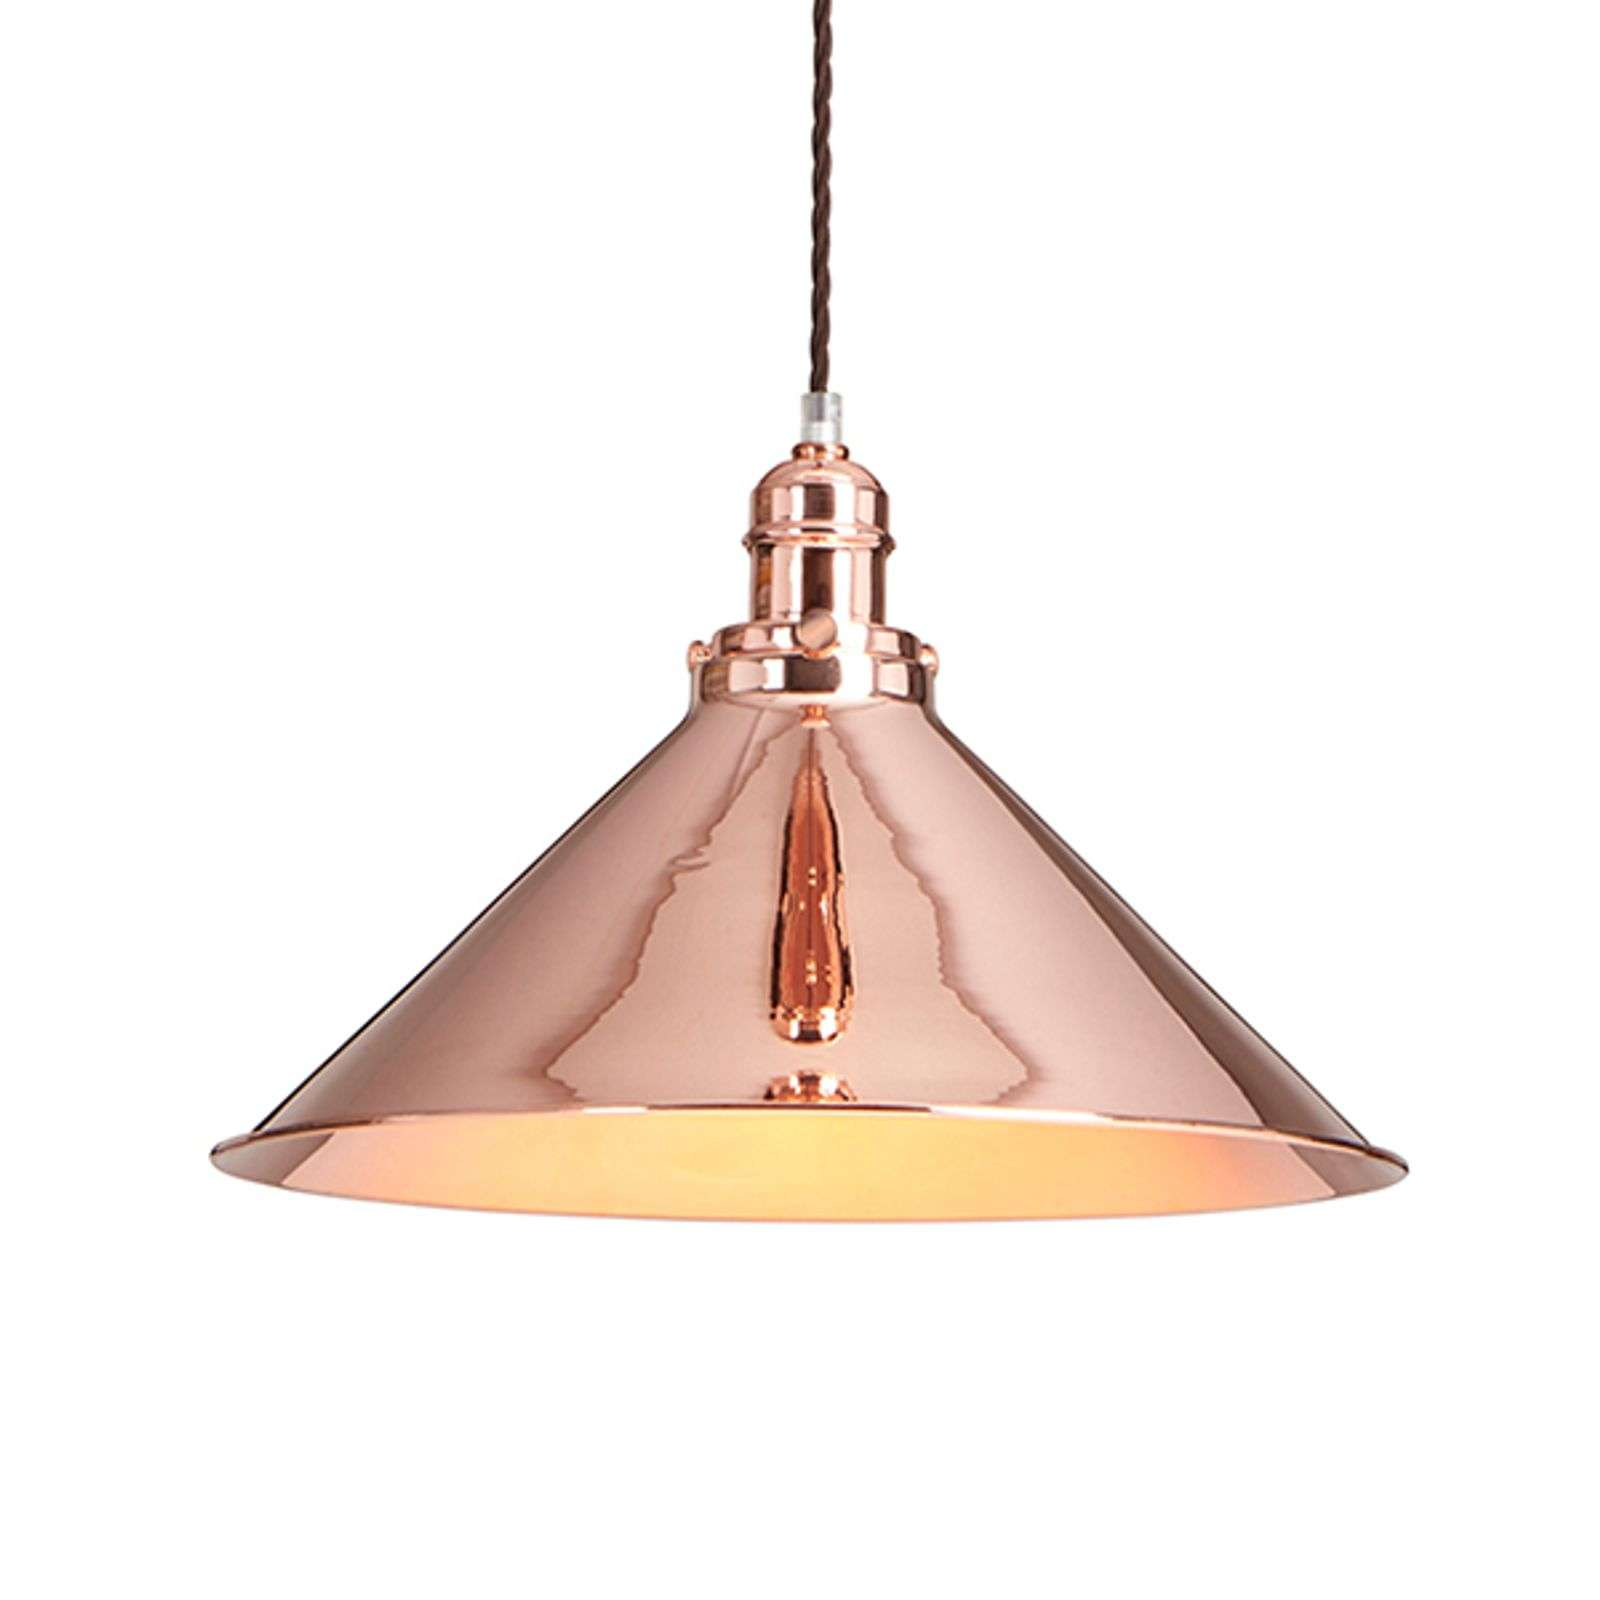 Suspension brillante Provence au design industriel